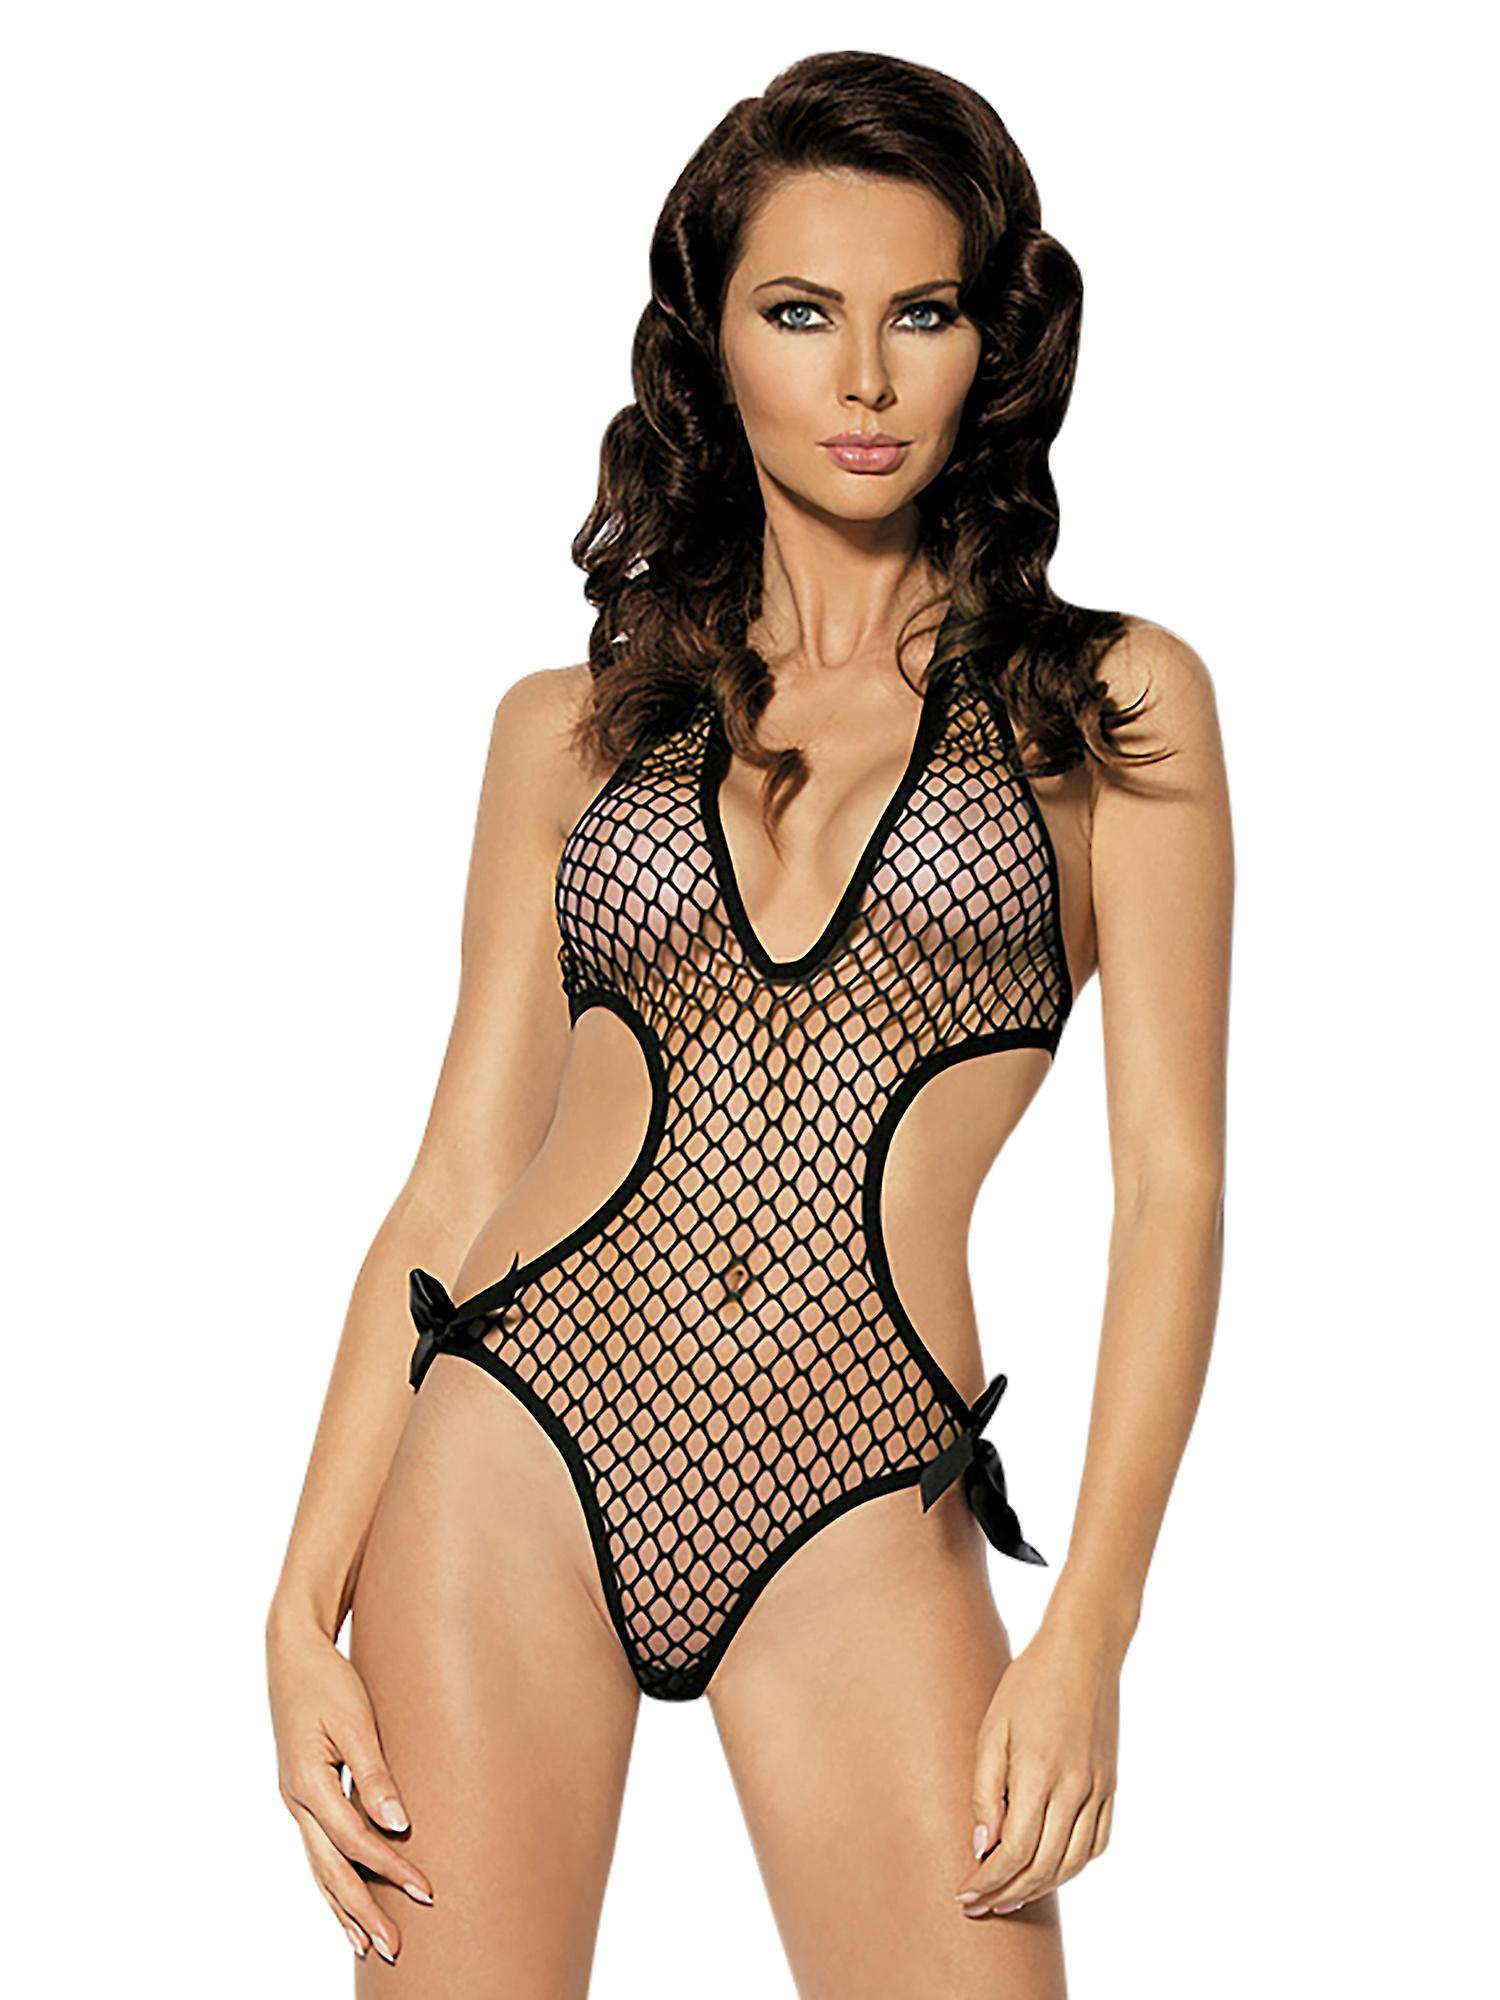 Sexy Lingerie Black Fishnet Cutout Body Bows